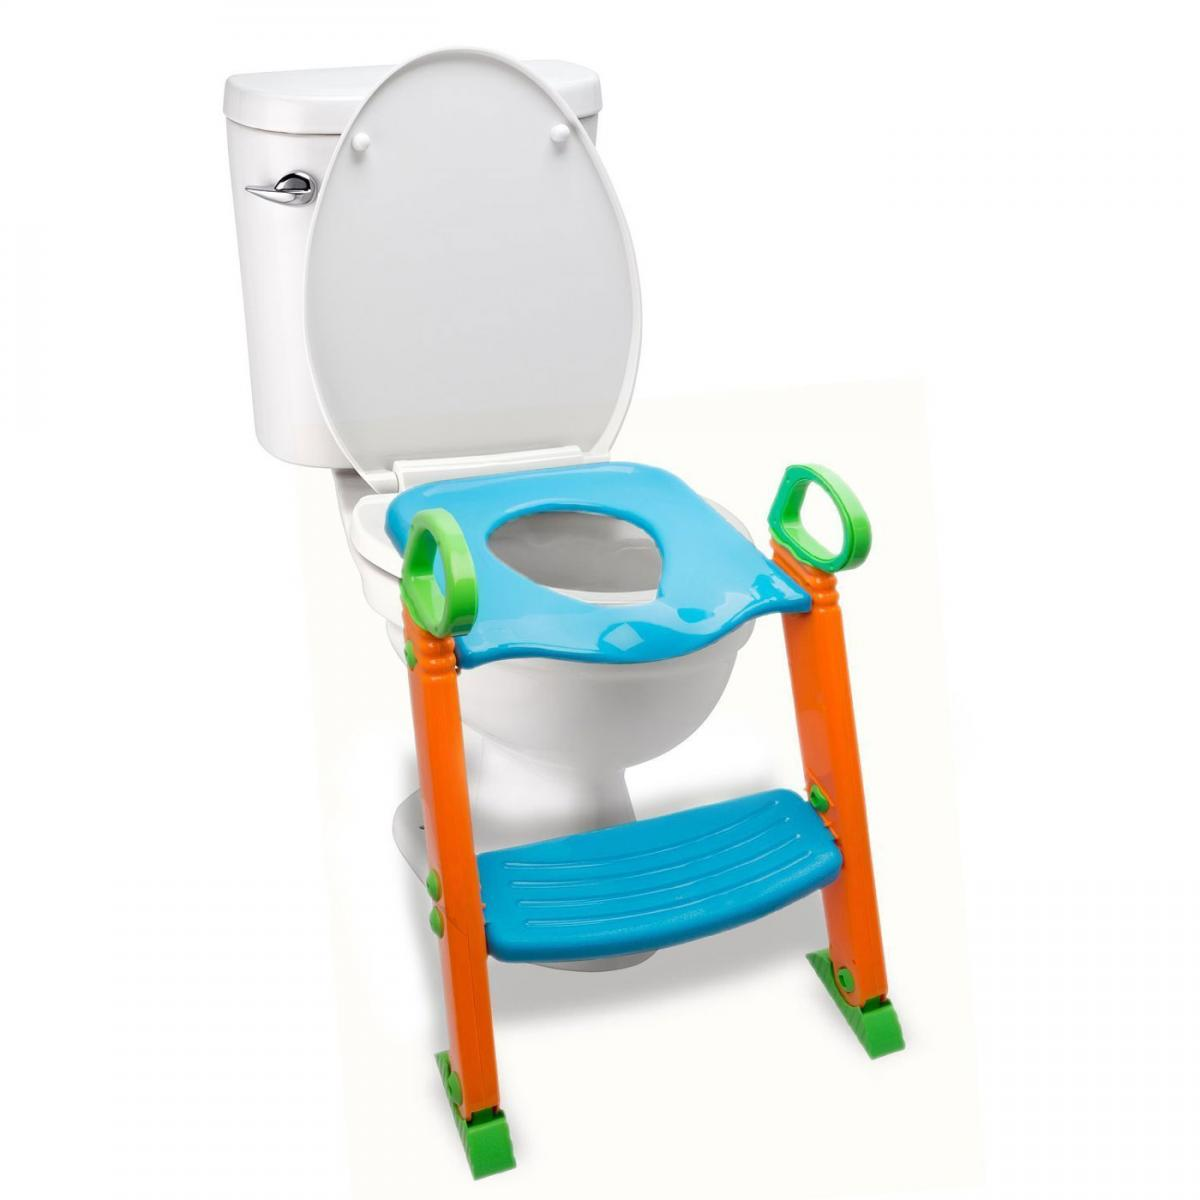 Pleasant Best Potty Seats And Chairs 2019 For Toddlers Parenting Evergreenethics Interior Chair Design Evergreenethicsorg